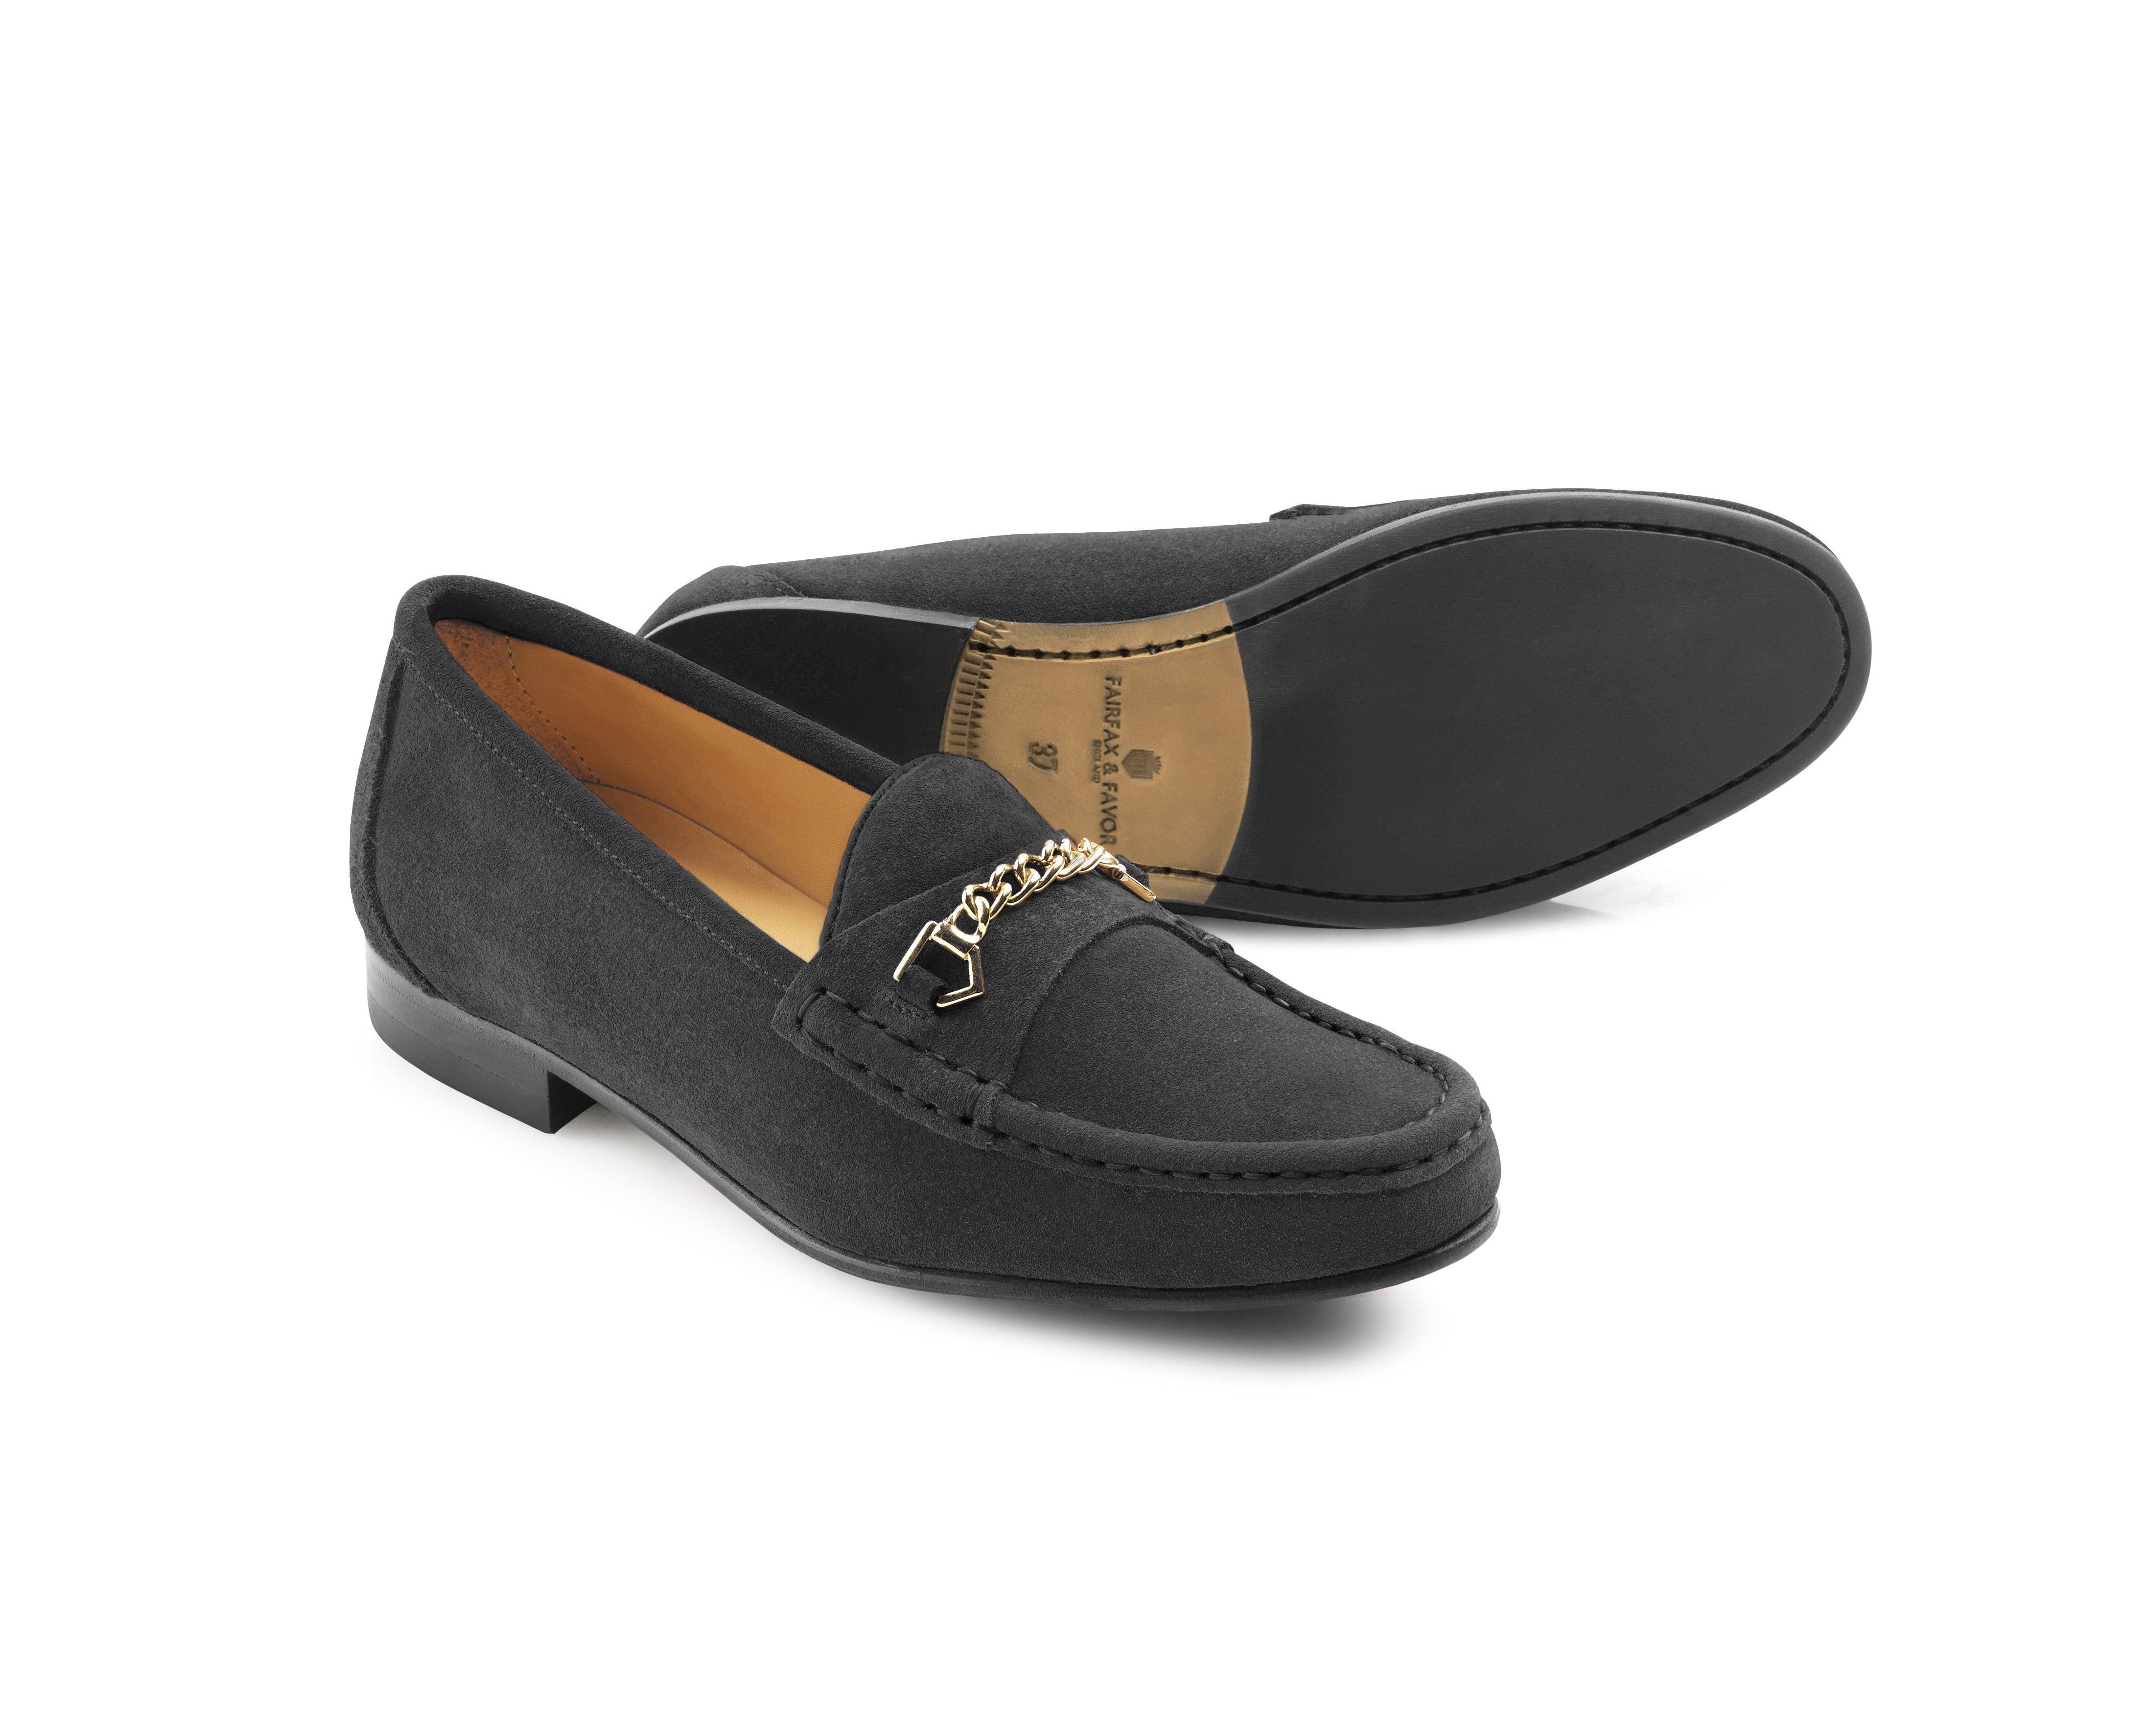 Fairfax and Favor Apsley Suede Shoes for Ladies in Grey